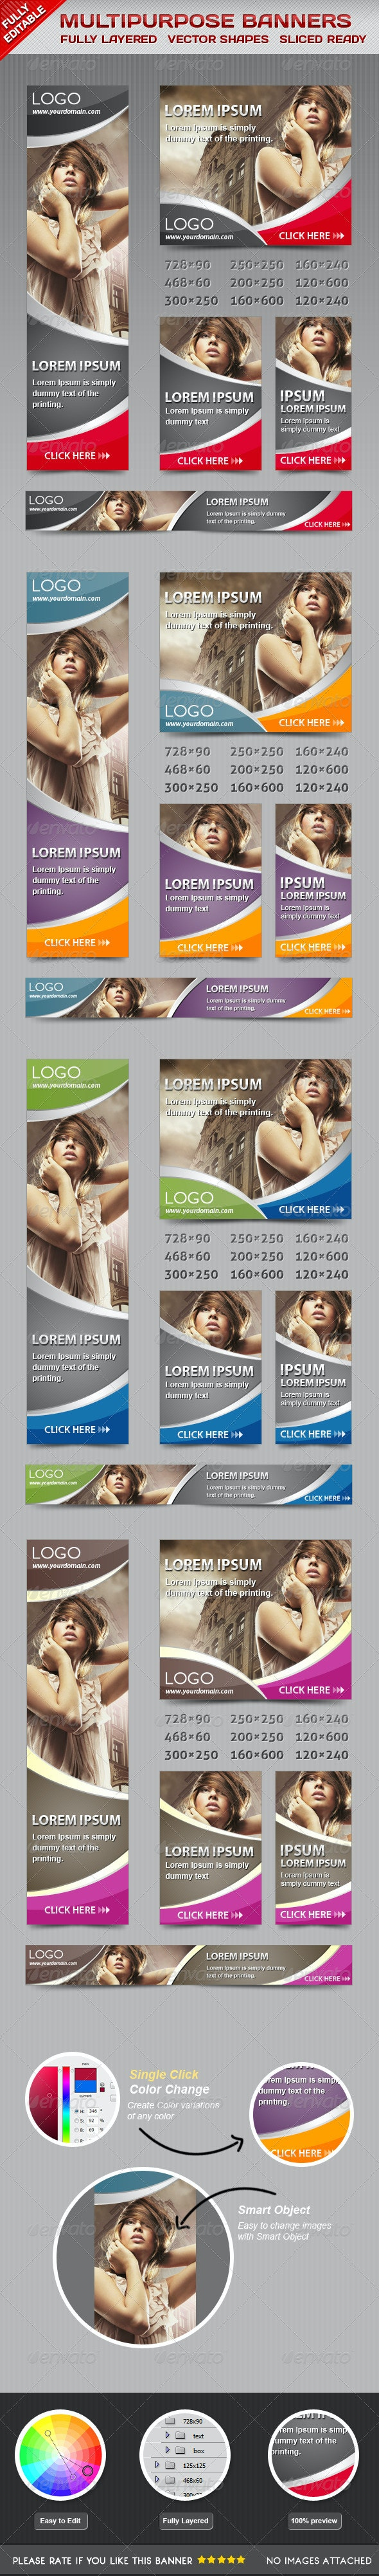 Multiporpose Glamorous Banners - Banners & Ads Web Elements